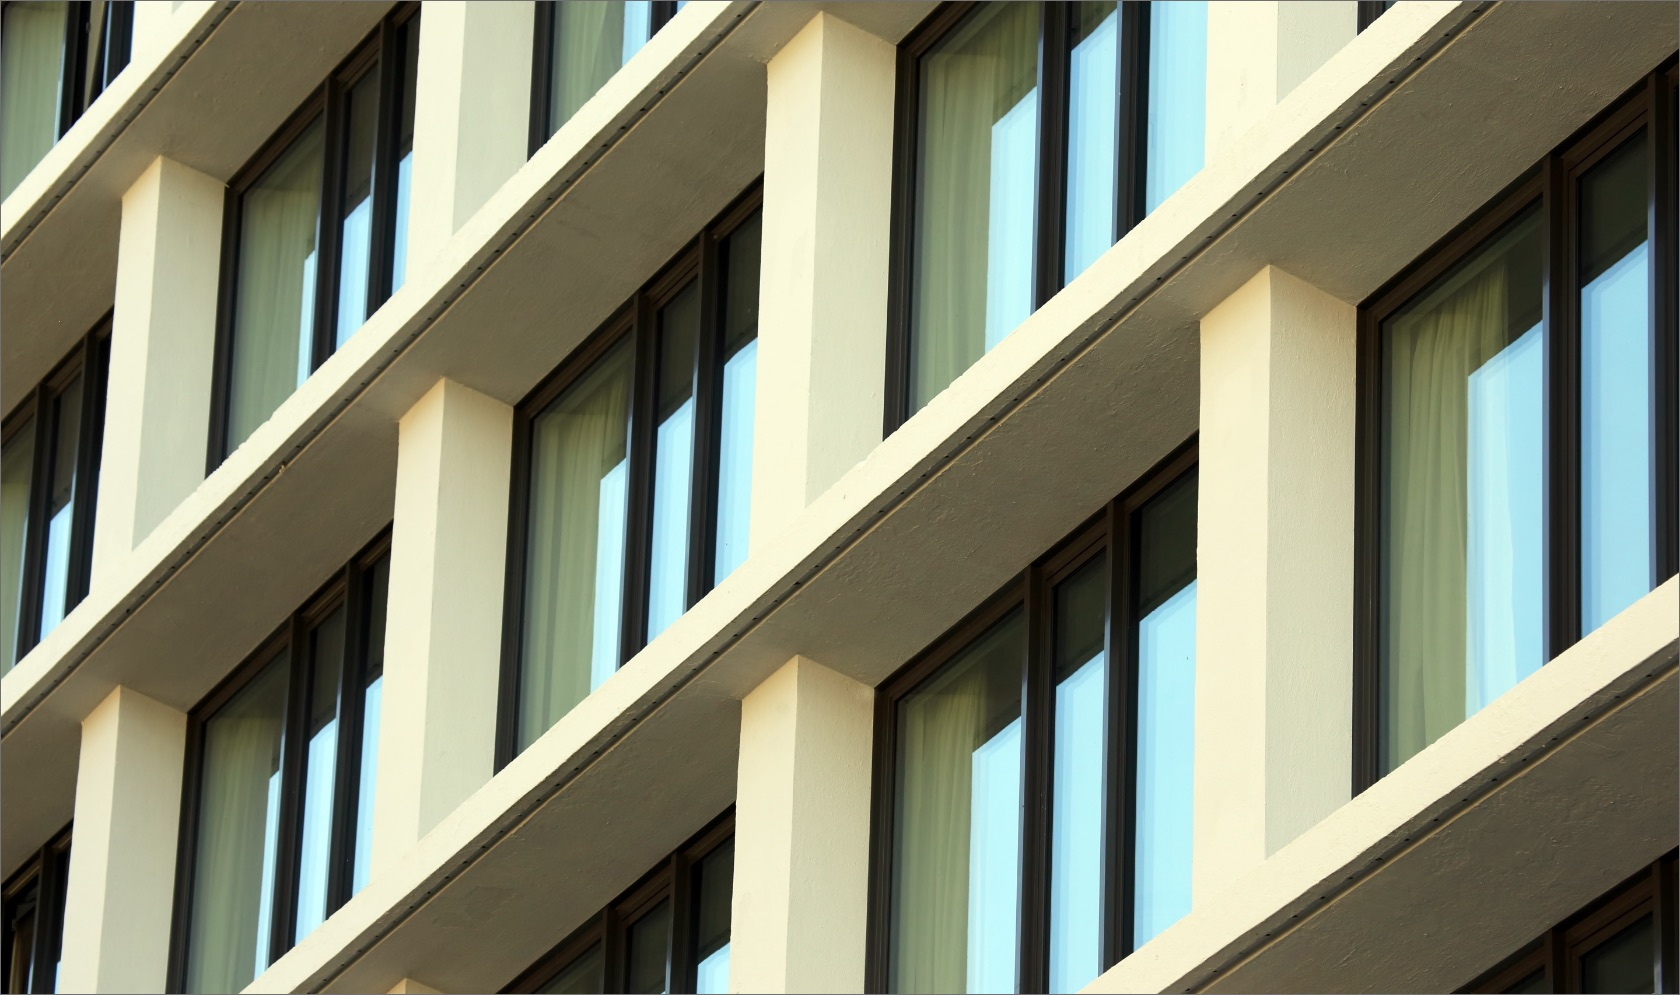 Modern sand colour block of flats facade with a glass